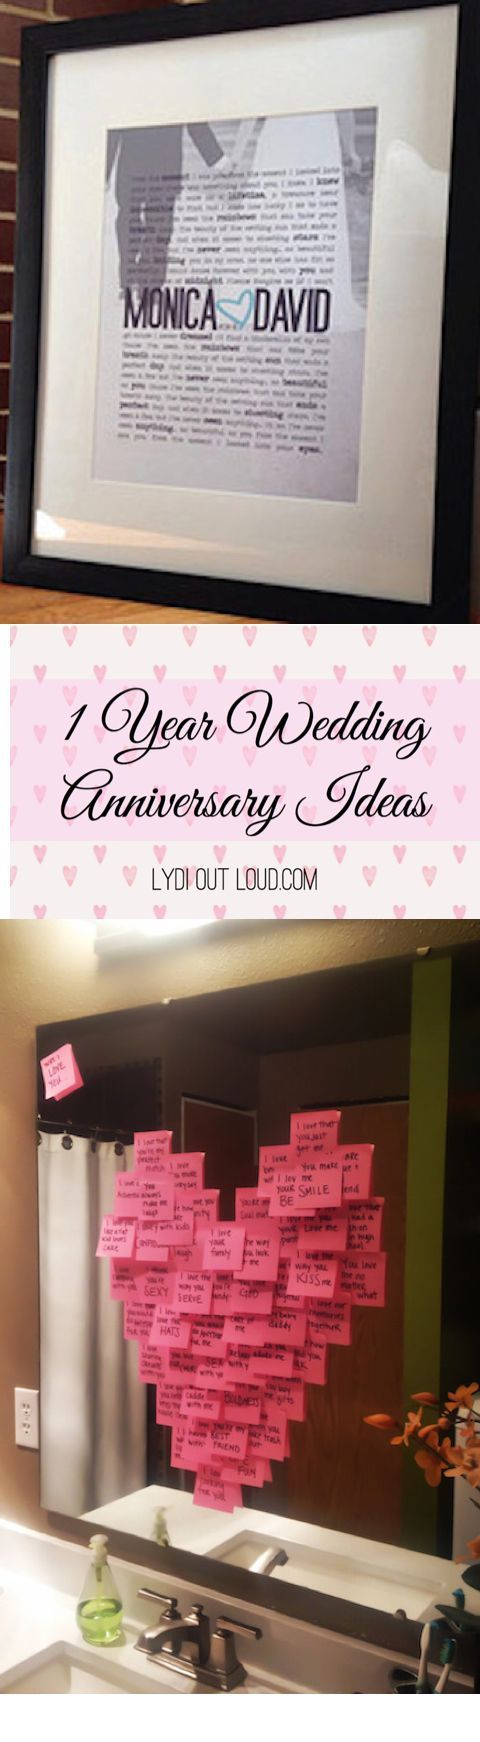 1 Year Wedding Anniversary ideas - paper gift! Anniversary gift ideas #anniversarygifts